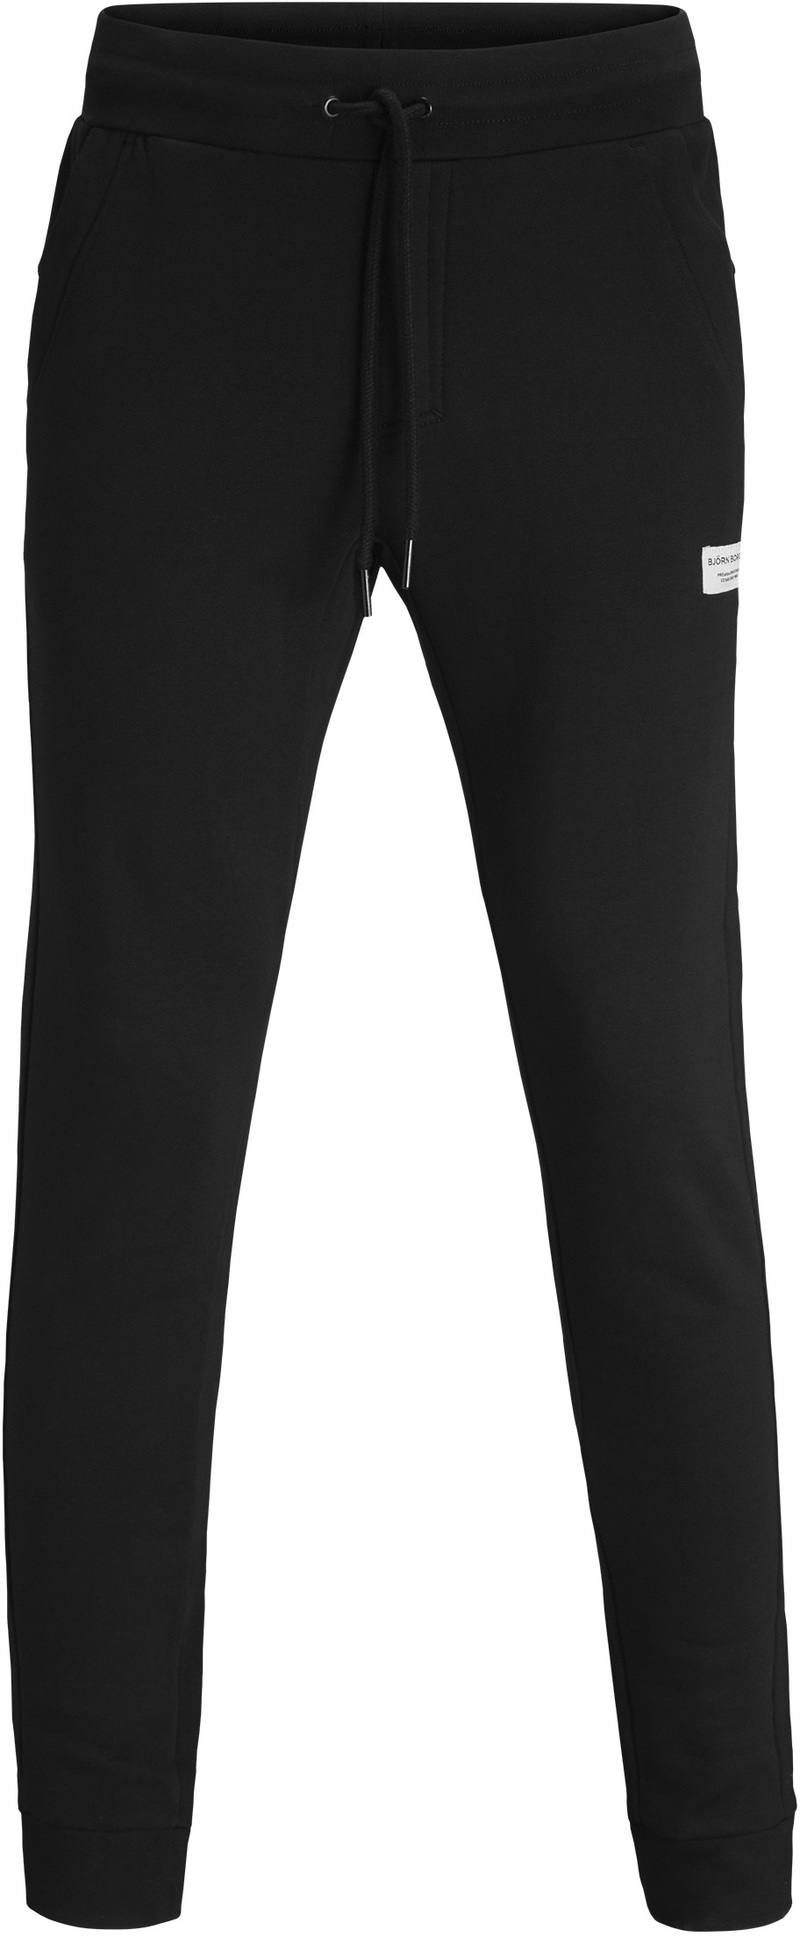 Bjorn Borg Sweatpants Black Beauty photo 0